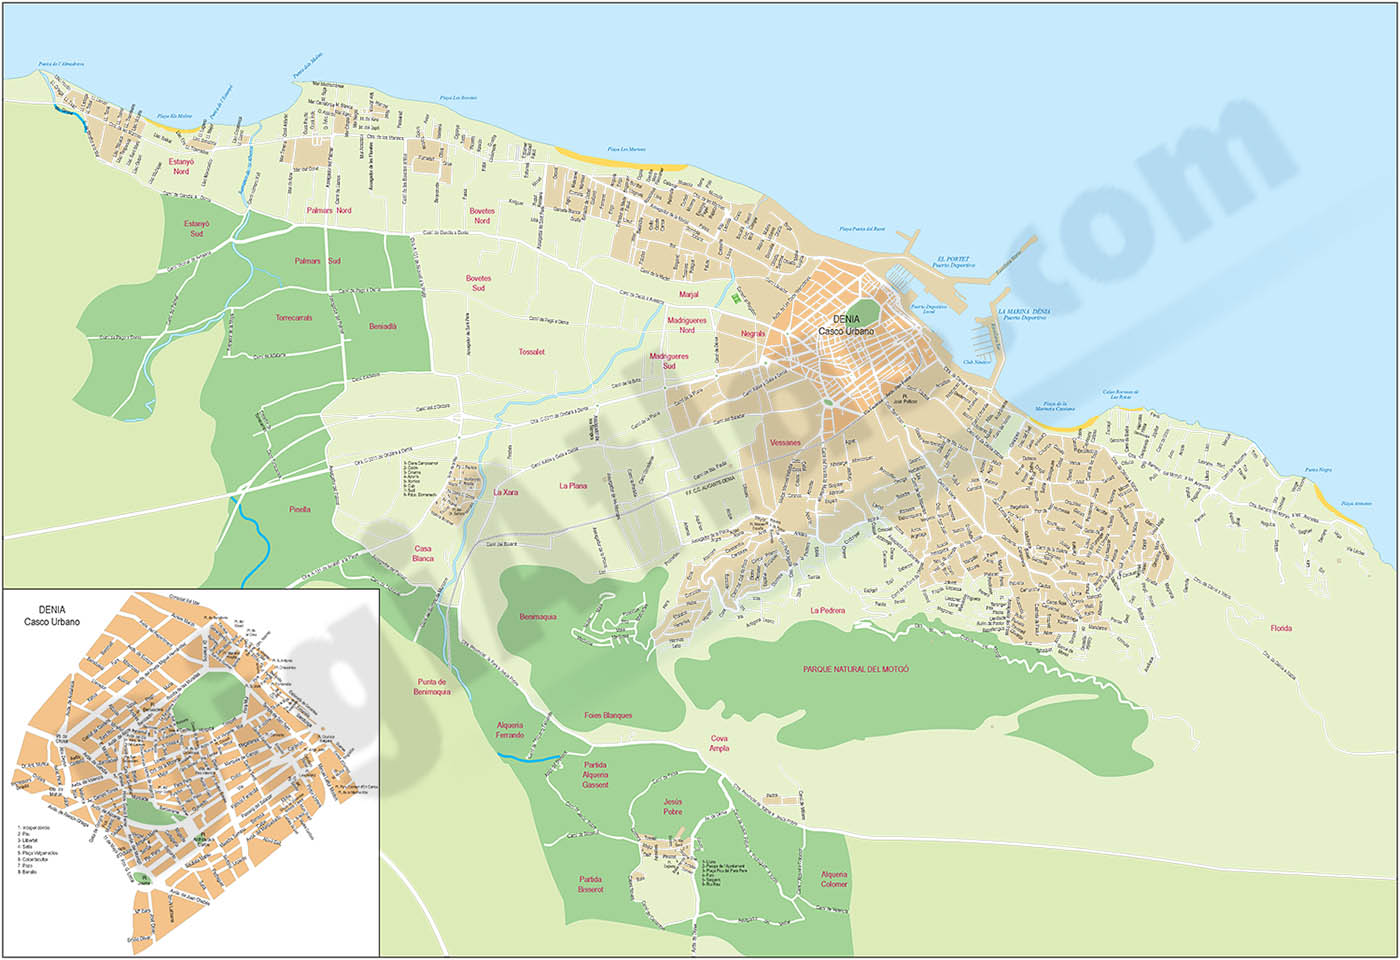 Denia (province of Alicante) - city map